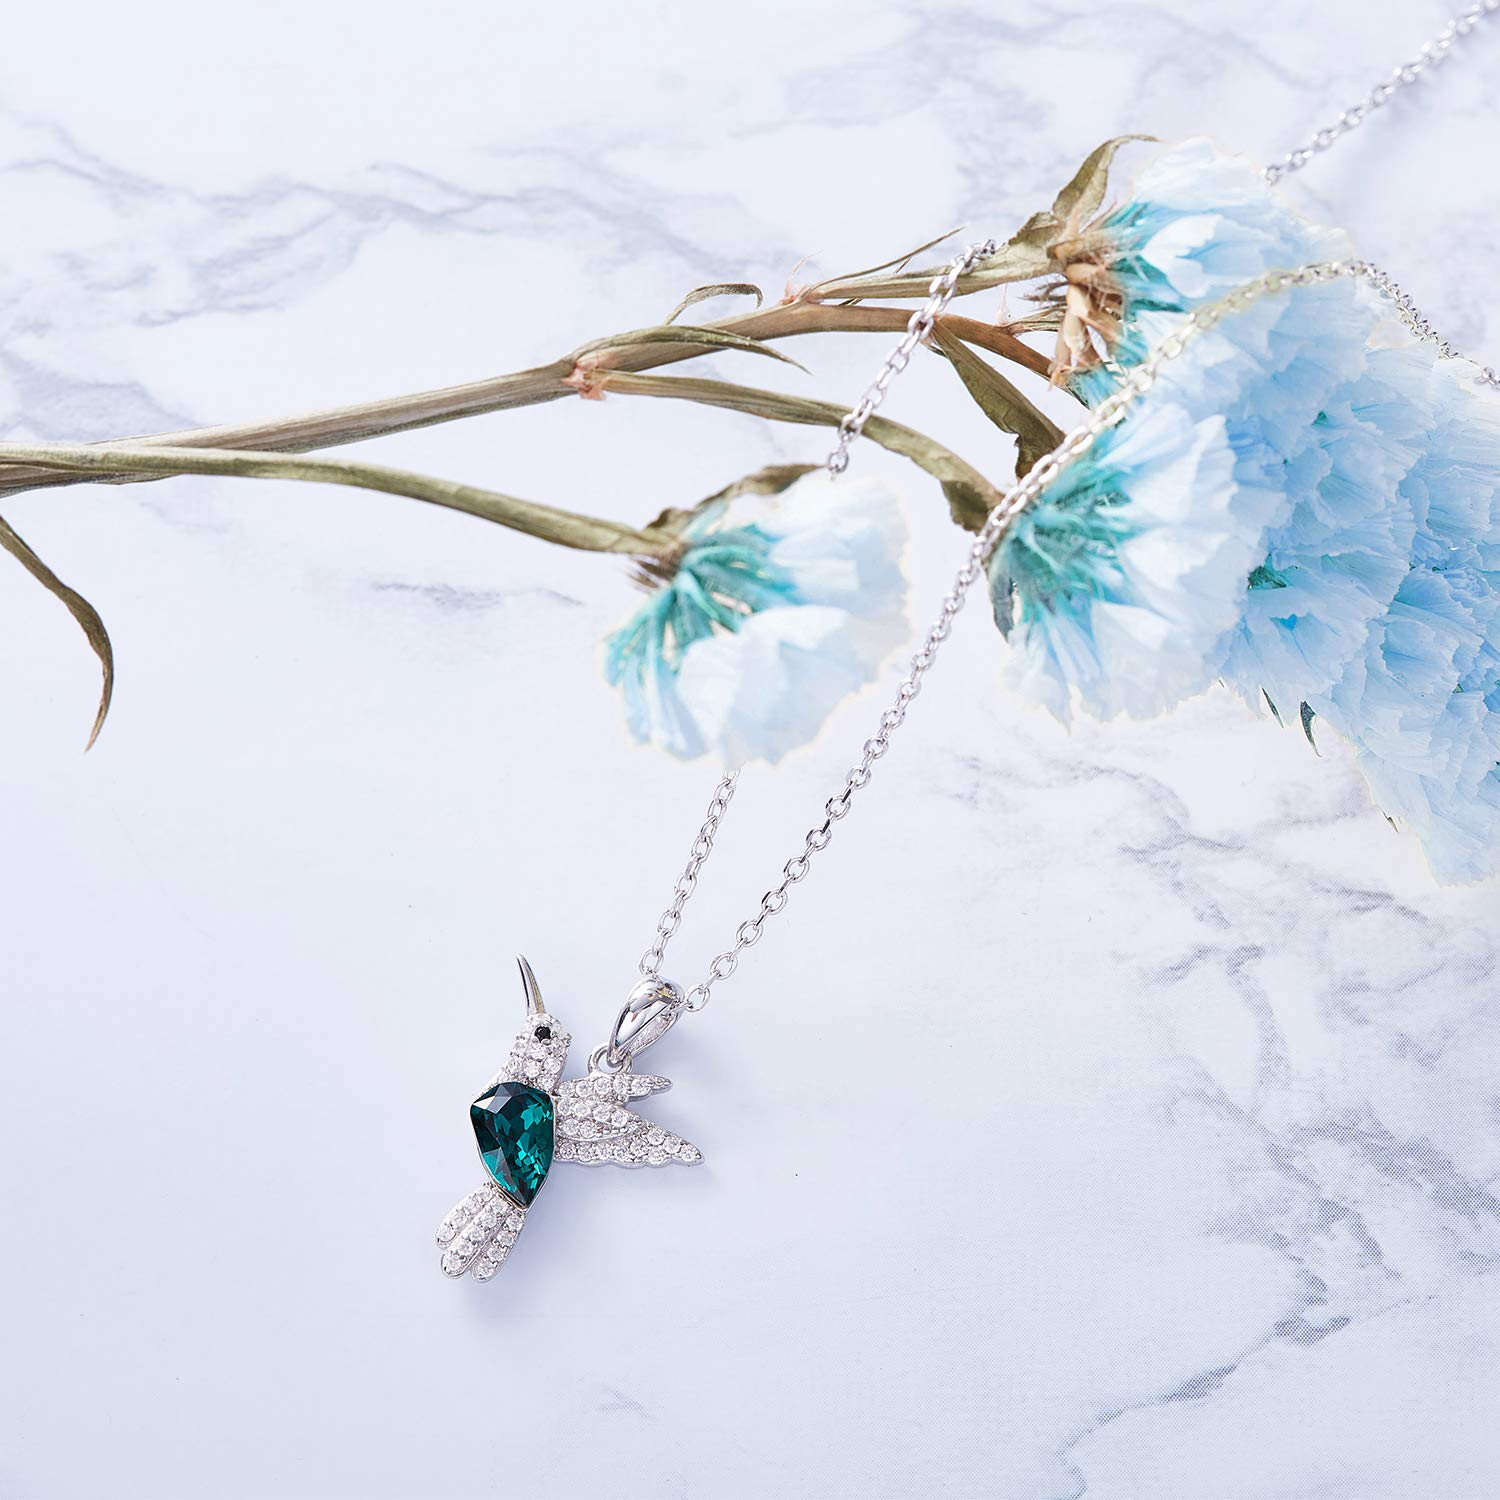 CDE S925 Sterling Silver Necklace Woman Swarovski Crystals Pendant Necklaces Hummingbird Fine Jewelry Gift for Her by CDE (Image #7)